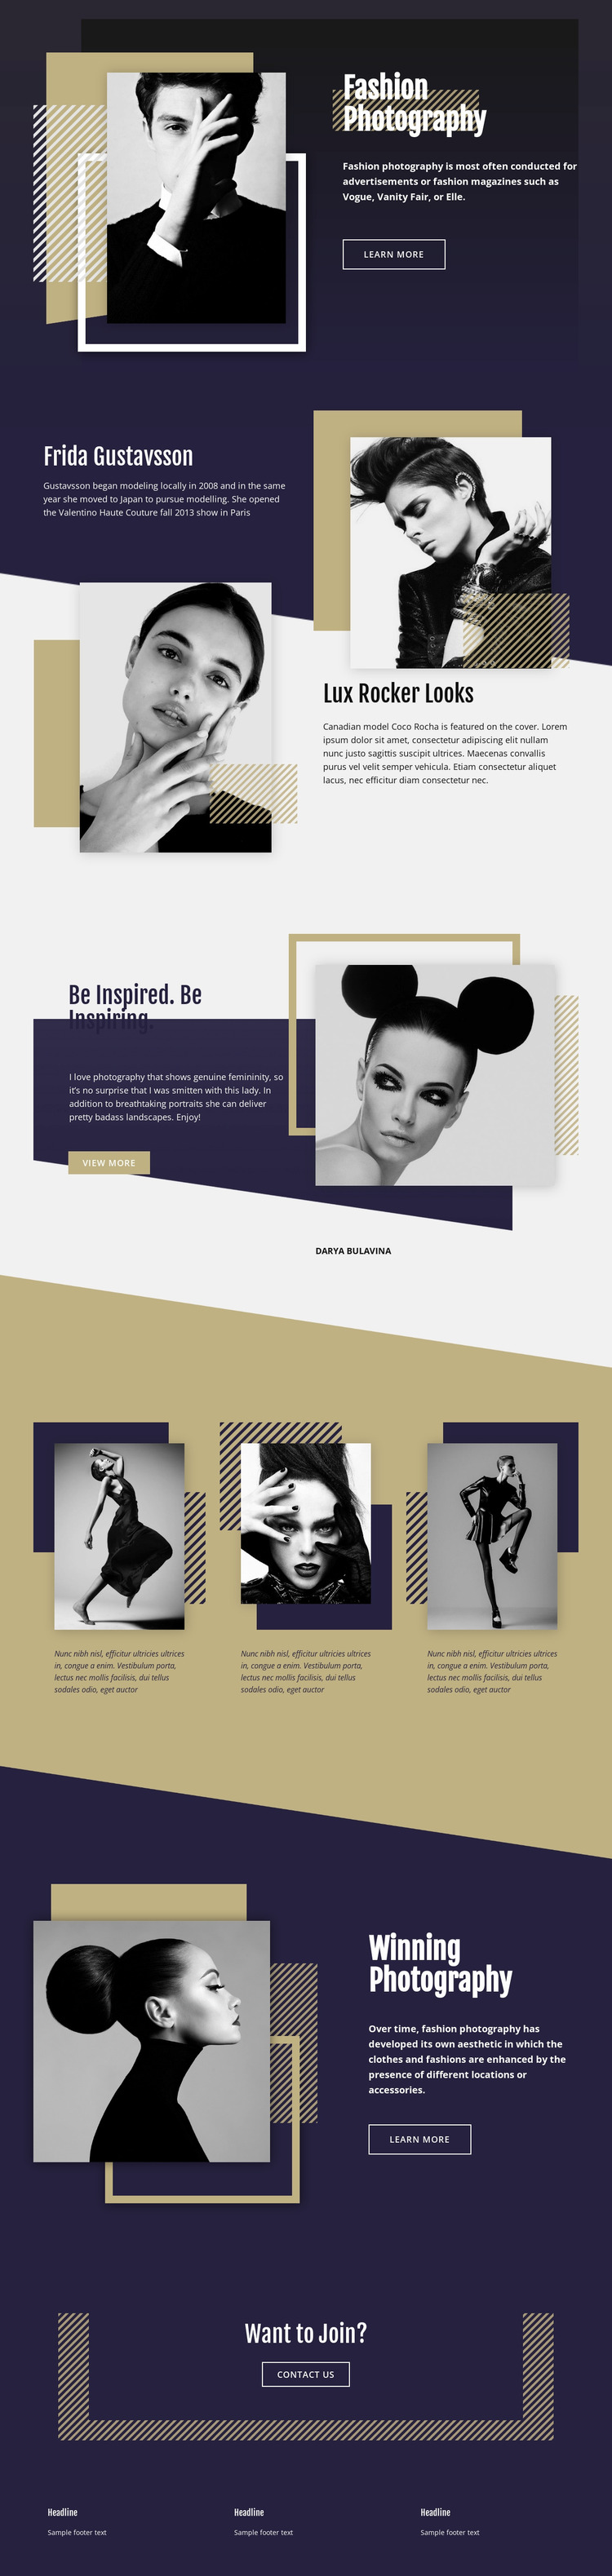 Fashion Photography Website Mockup